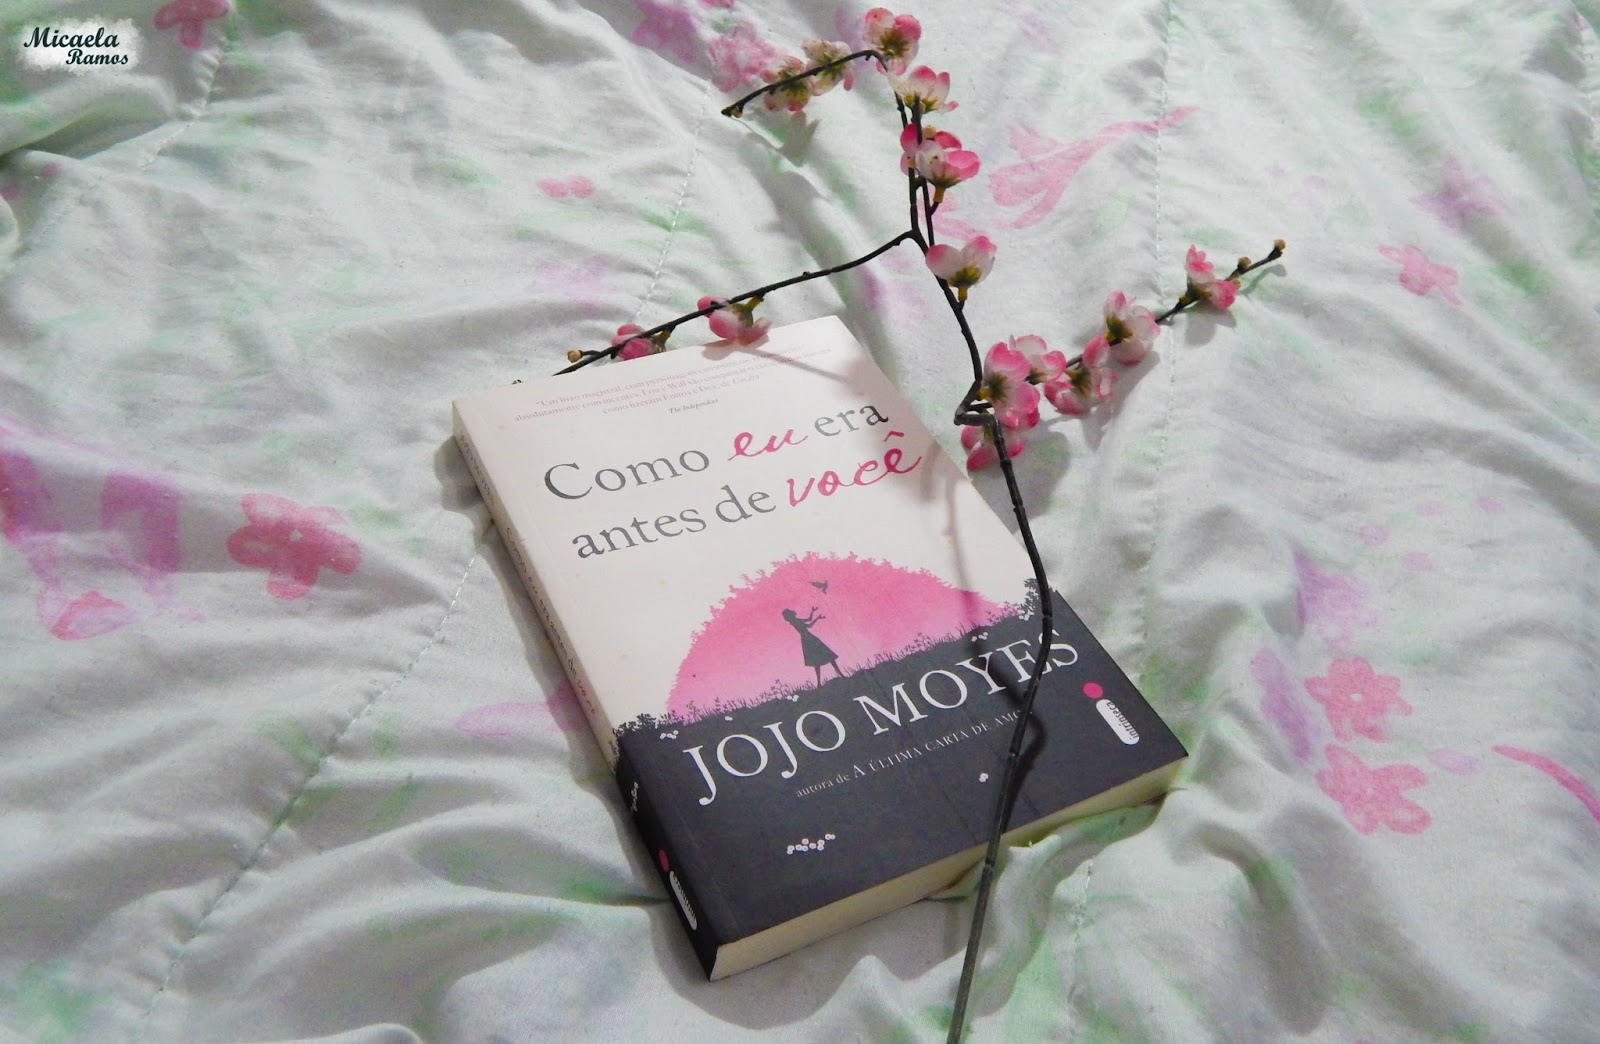 photography, me before you, como eu era antes de voce, jojo moyes, micela ramos, wanderlust,